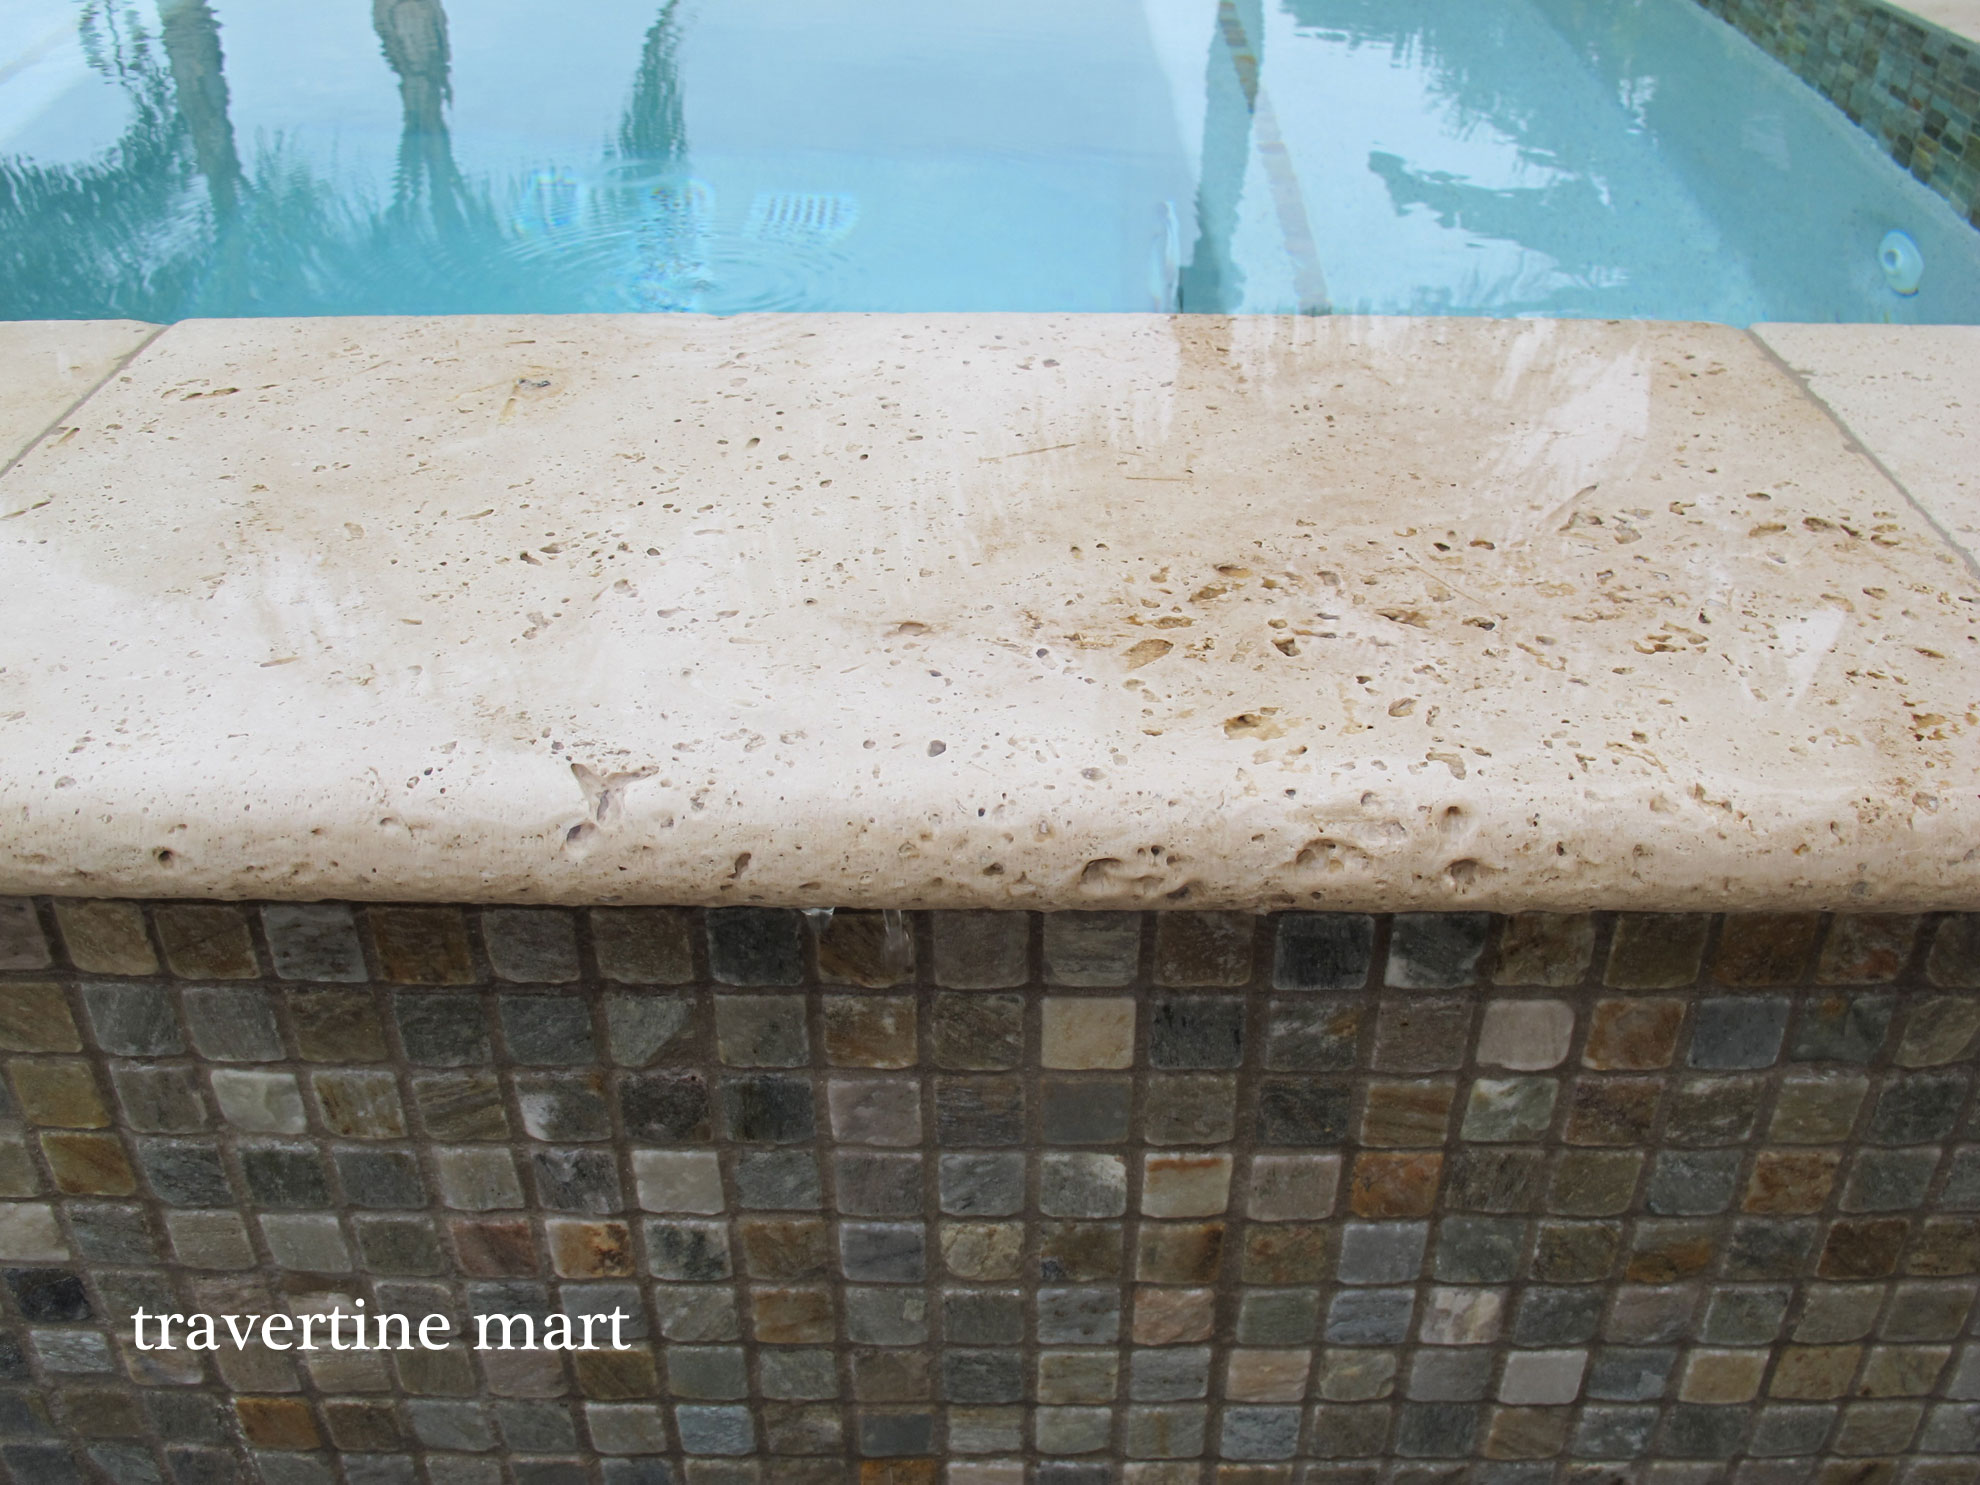 Travertine Pavers and Salt Water Erosion